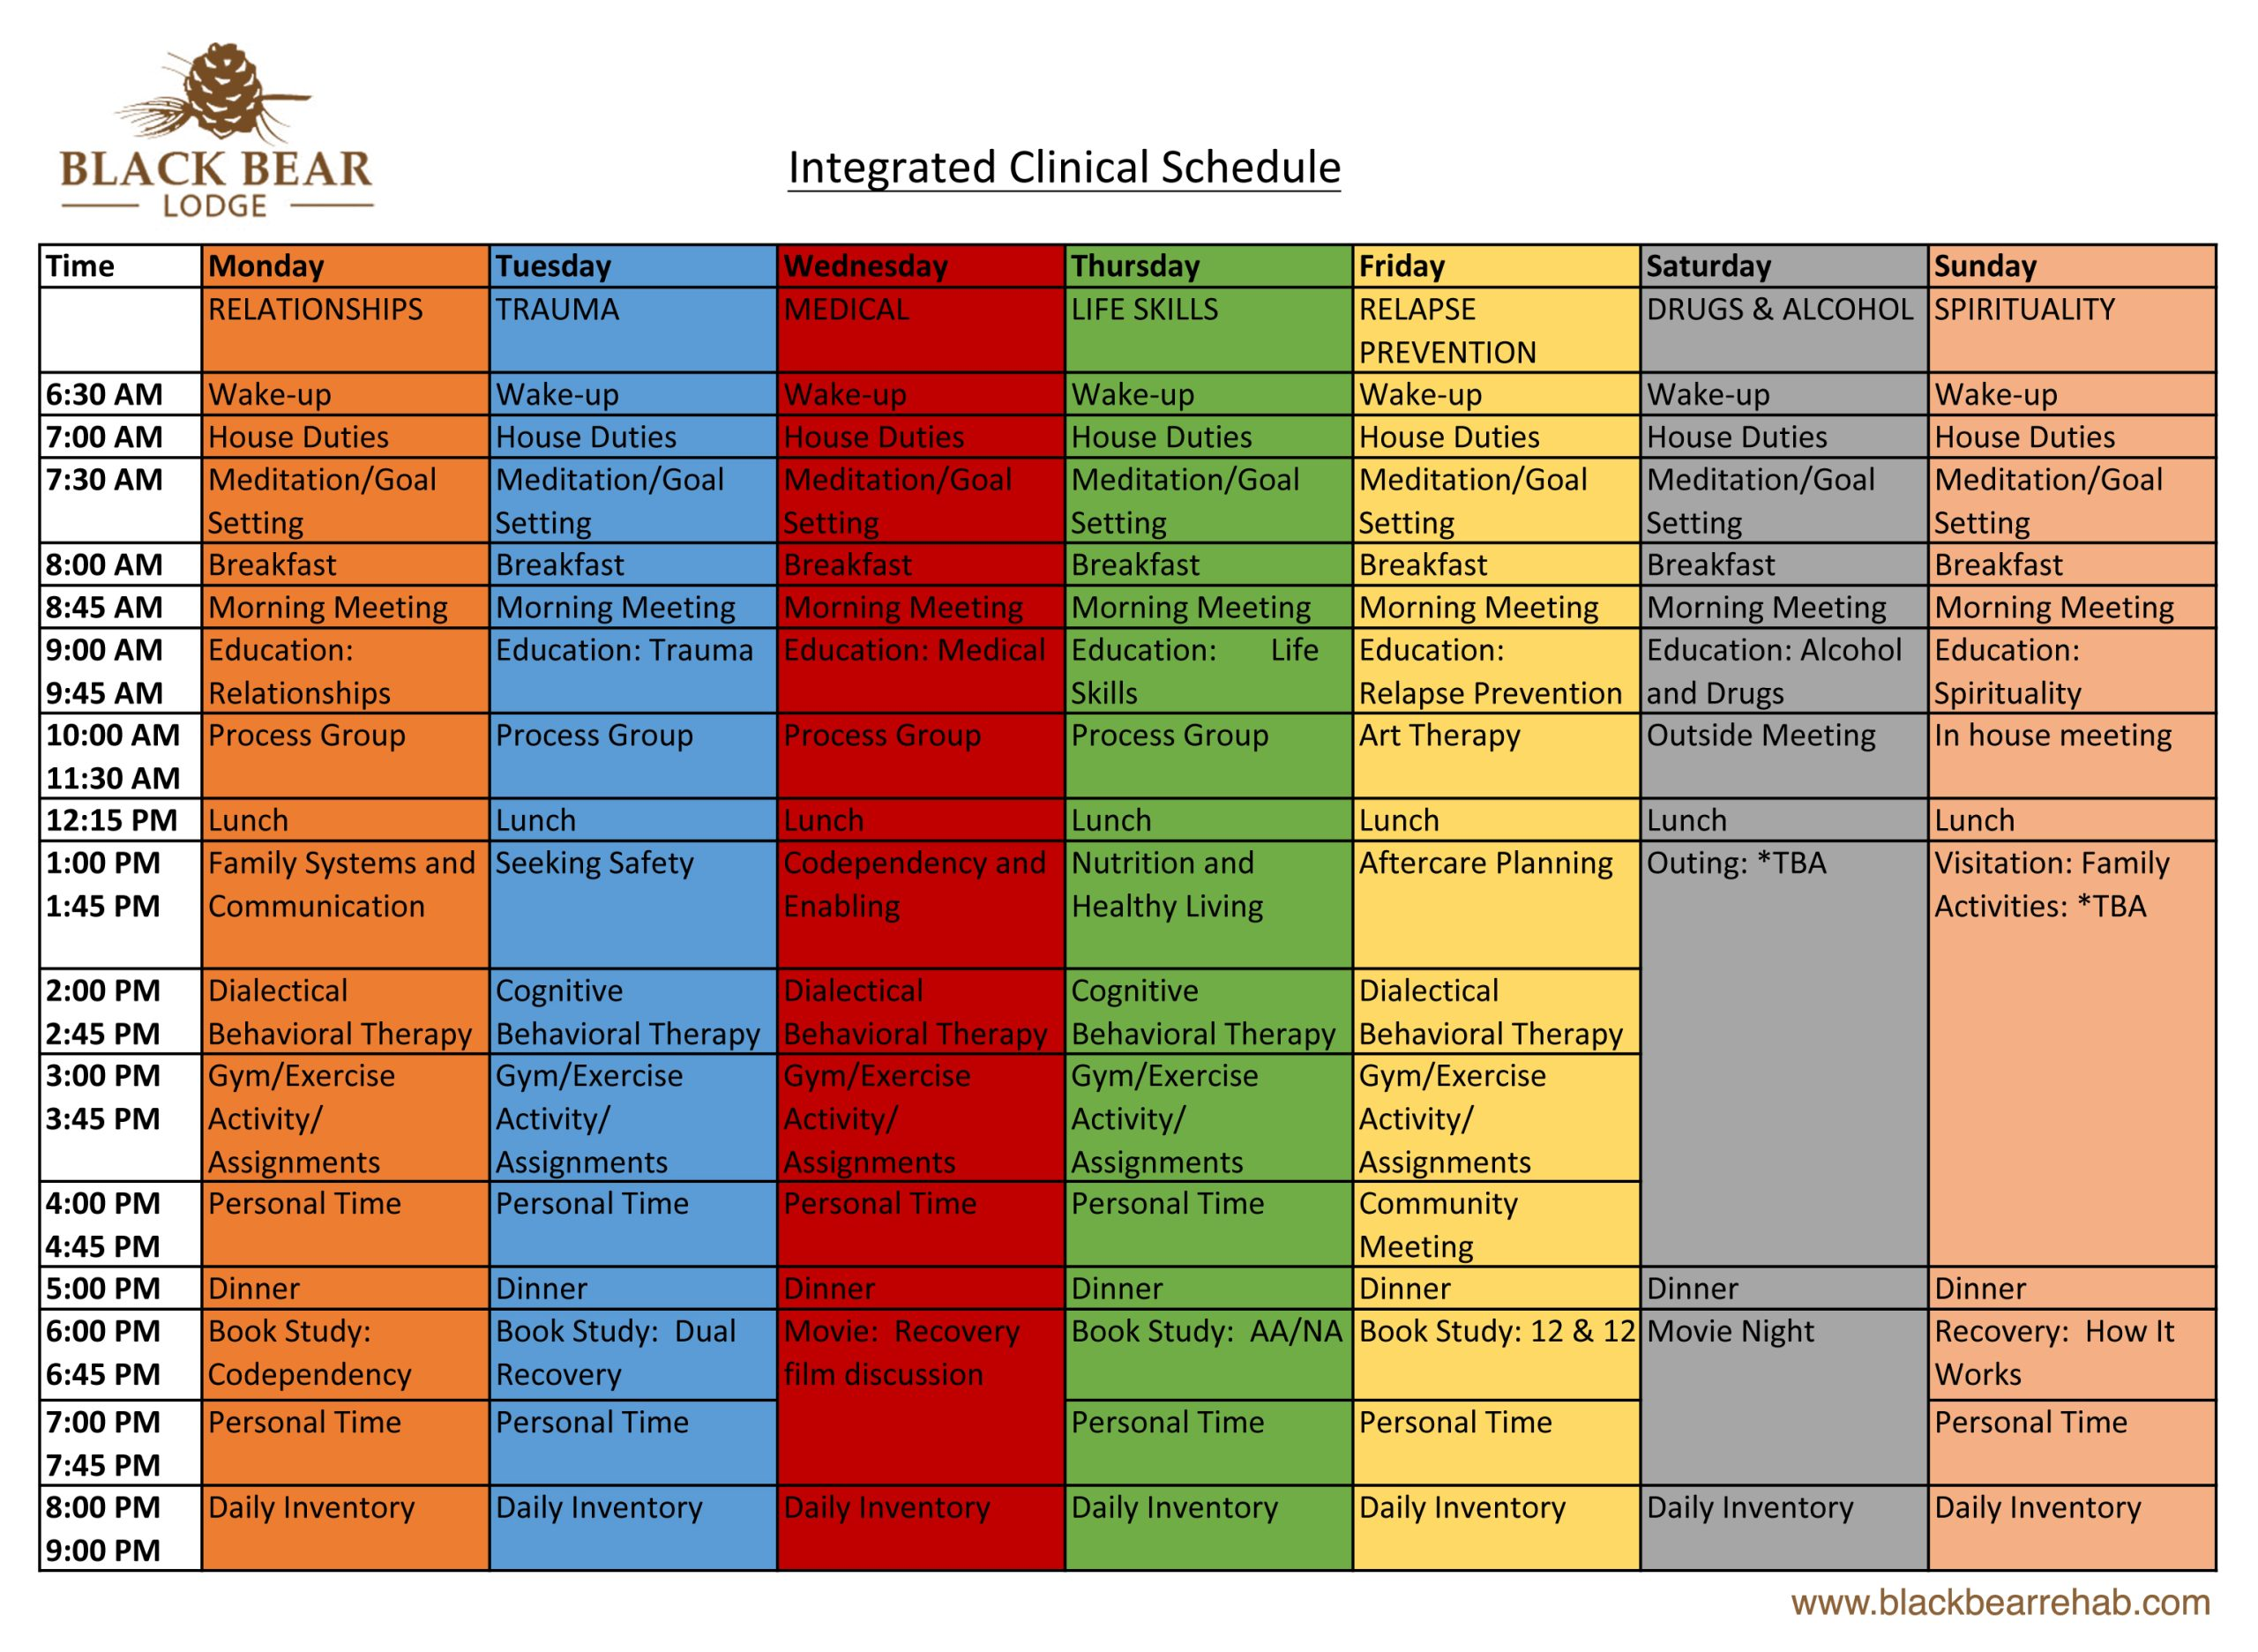 Intergrated Clinical Schedule